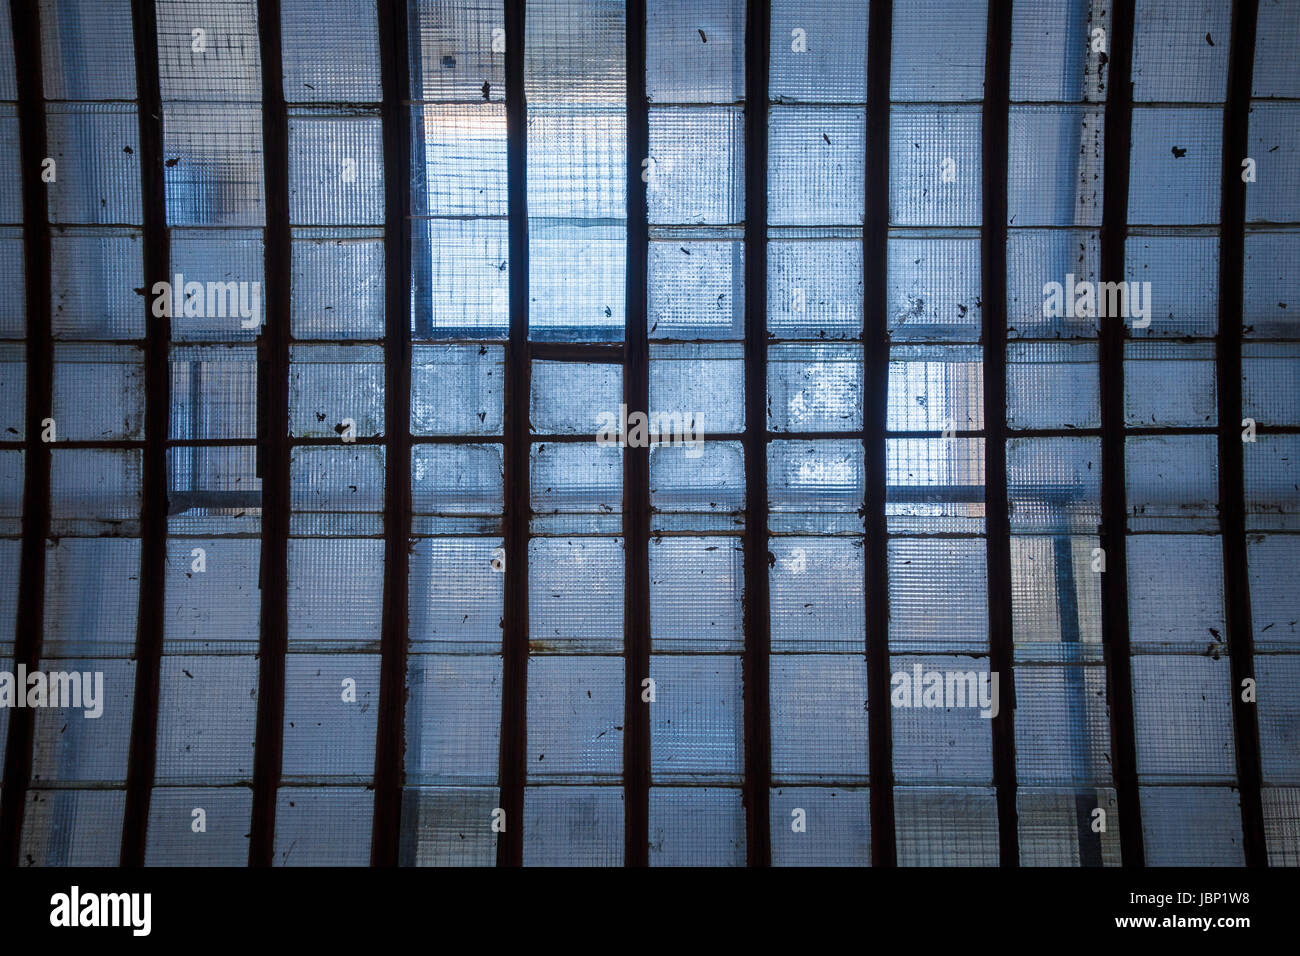 Industrial ceiling skylight of wire mesh reinforced glass panes and ...